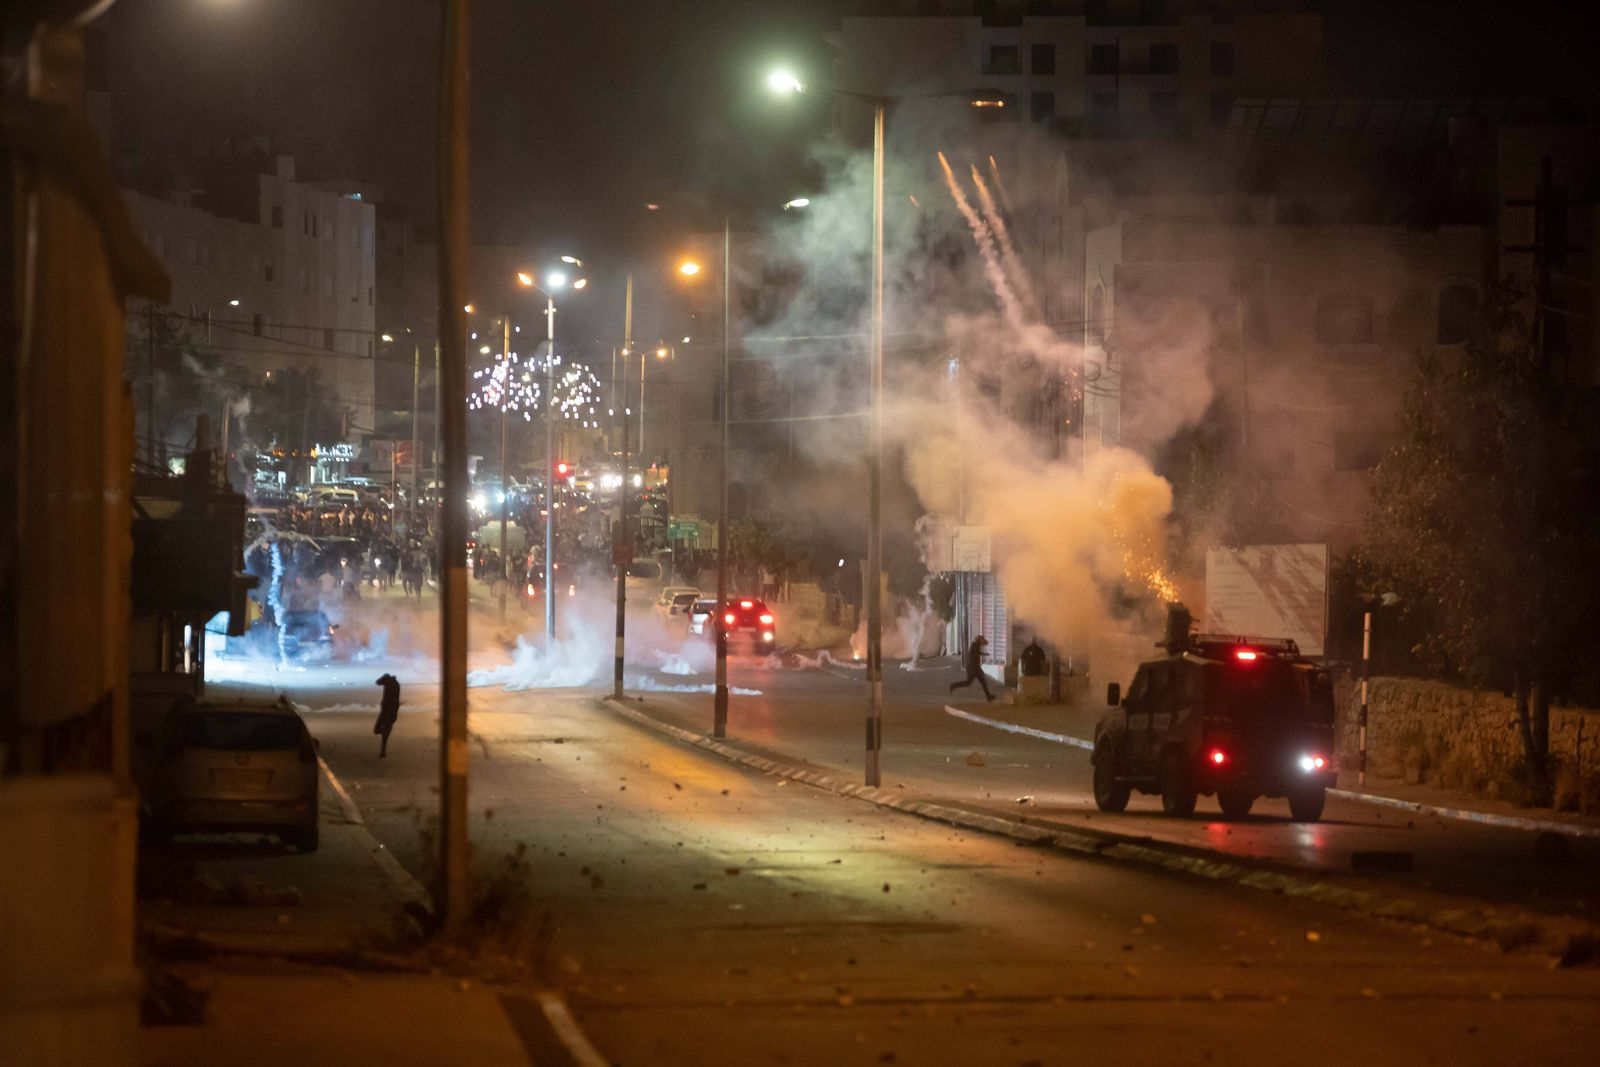 (210511) -- BETHLEHEM, May 11, 2021 -- An Israeli military vehicle fires tear gas canisters at Palestinian protesters d